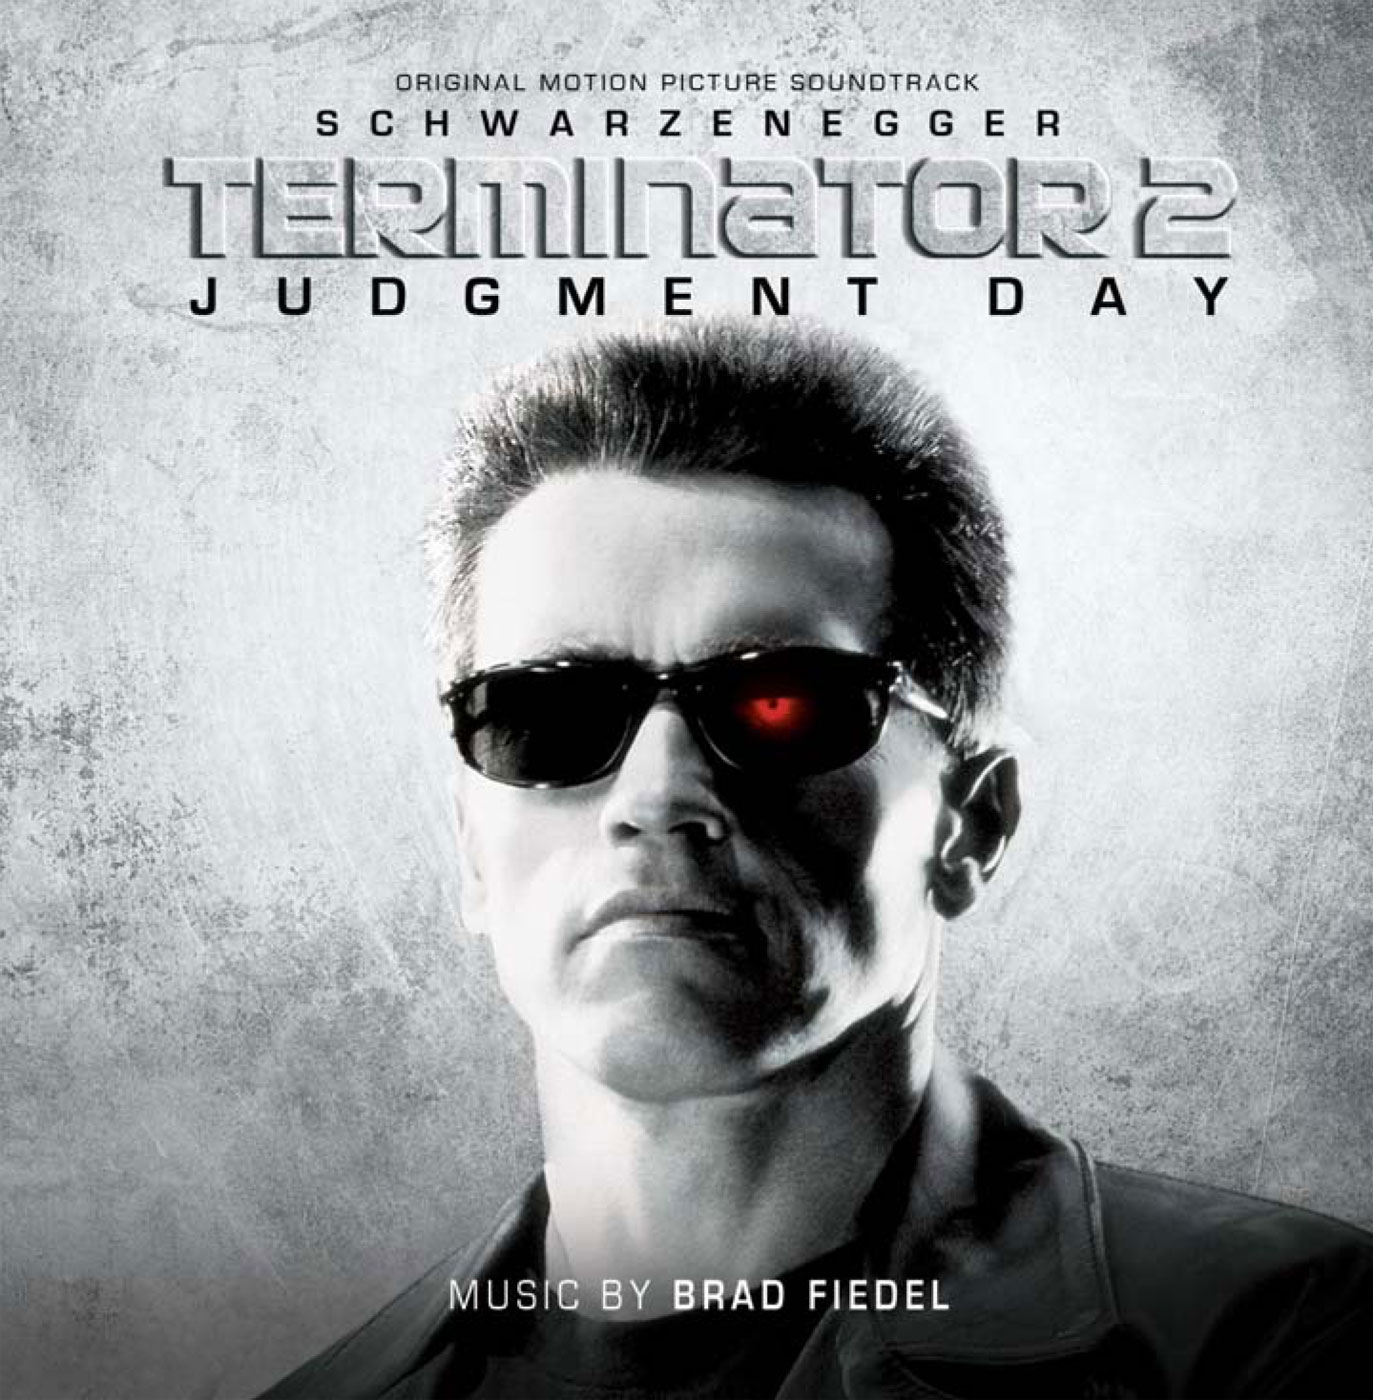 Brad_Fiedel_-_Terminator_2_Judgment_Day_artwork